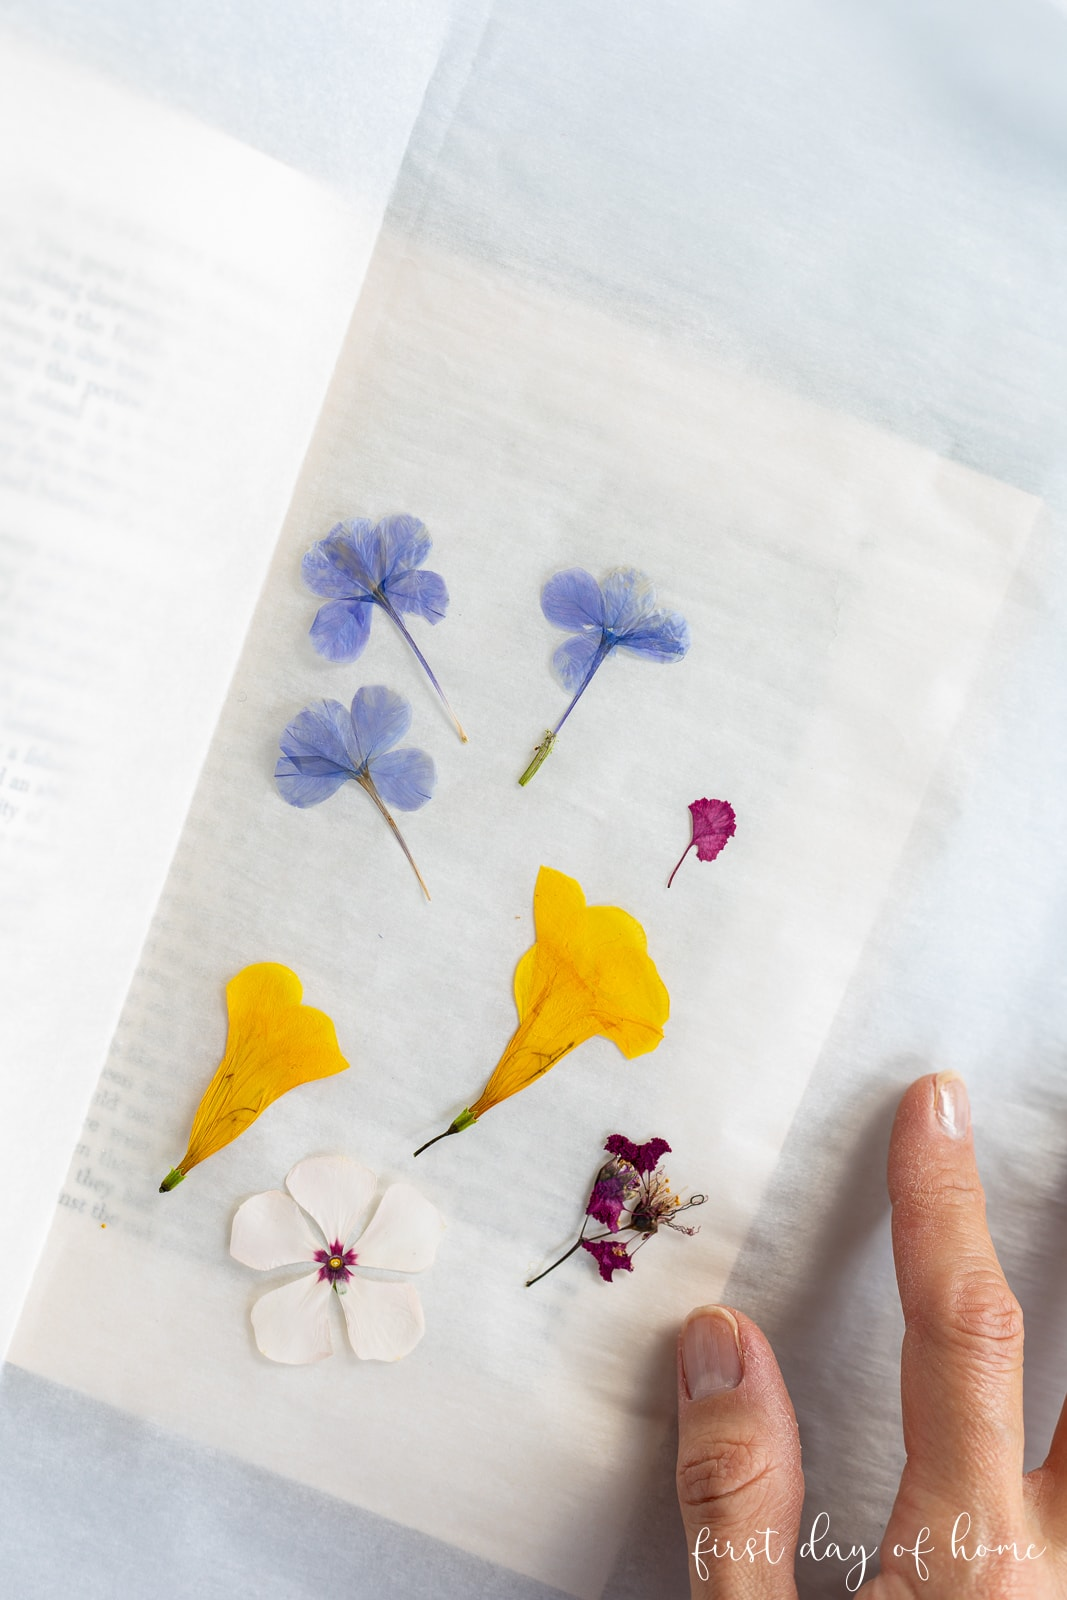 Pressed flowers in a book after 2.5 weeks